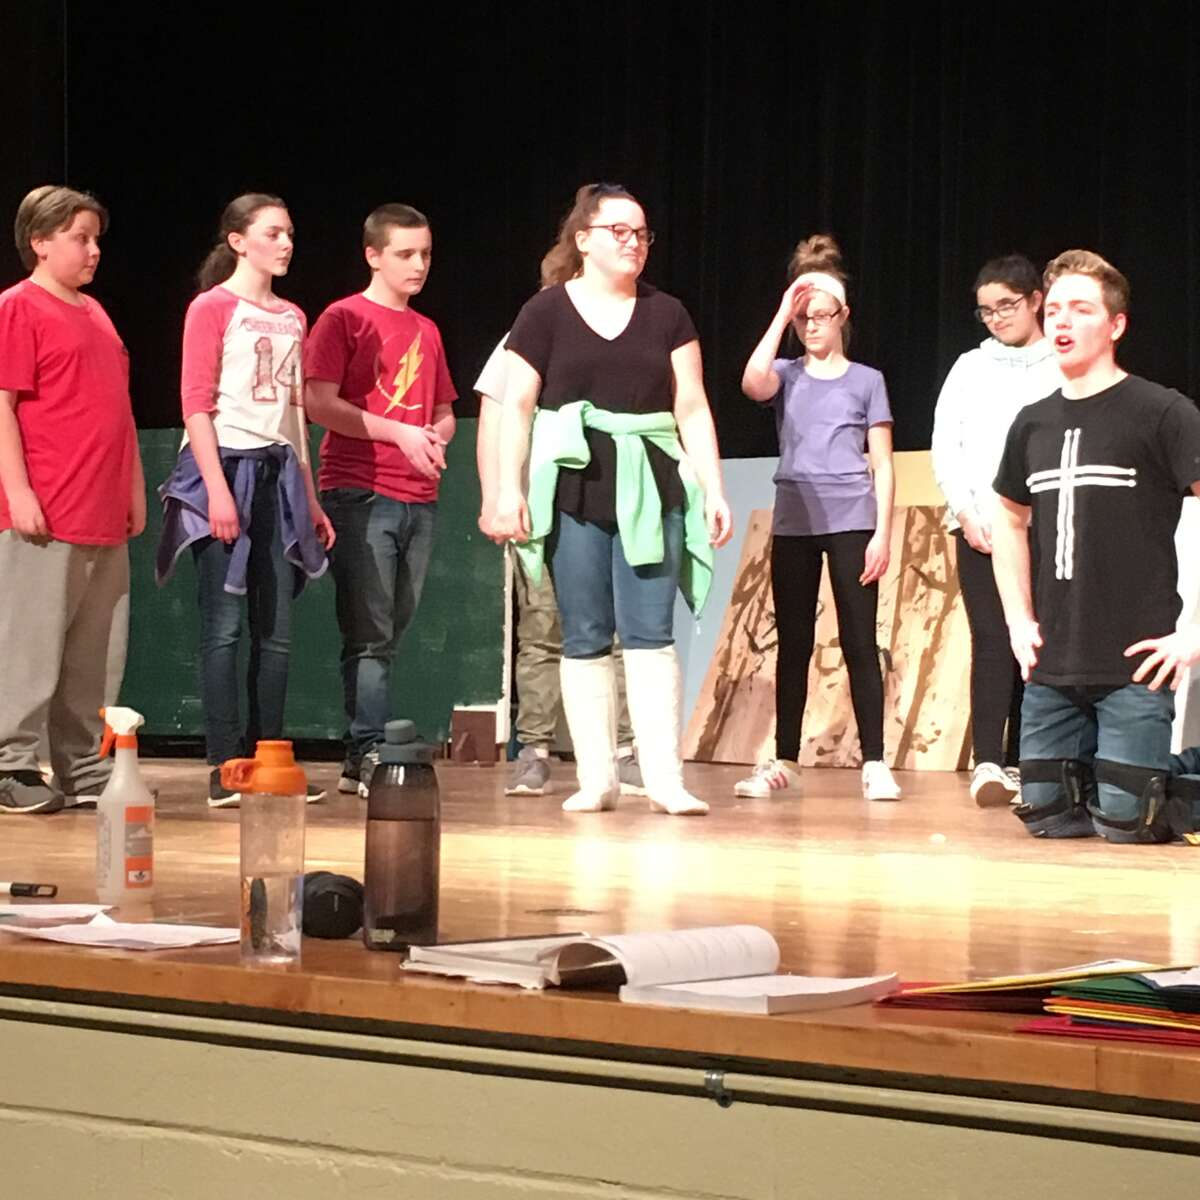 Rehearsals for Cohoes High School's production of